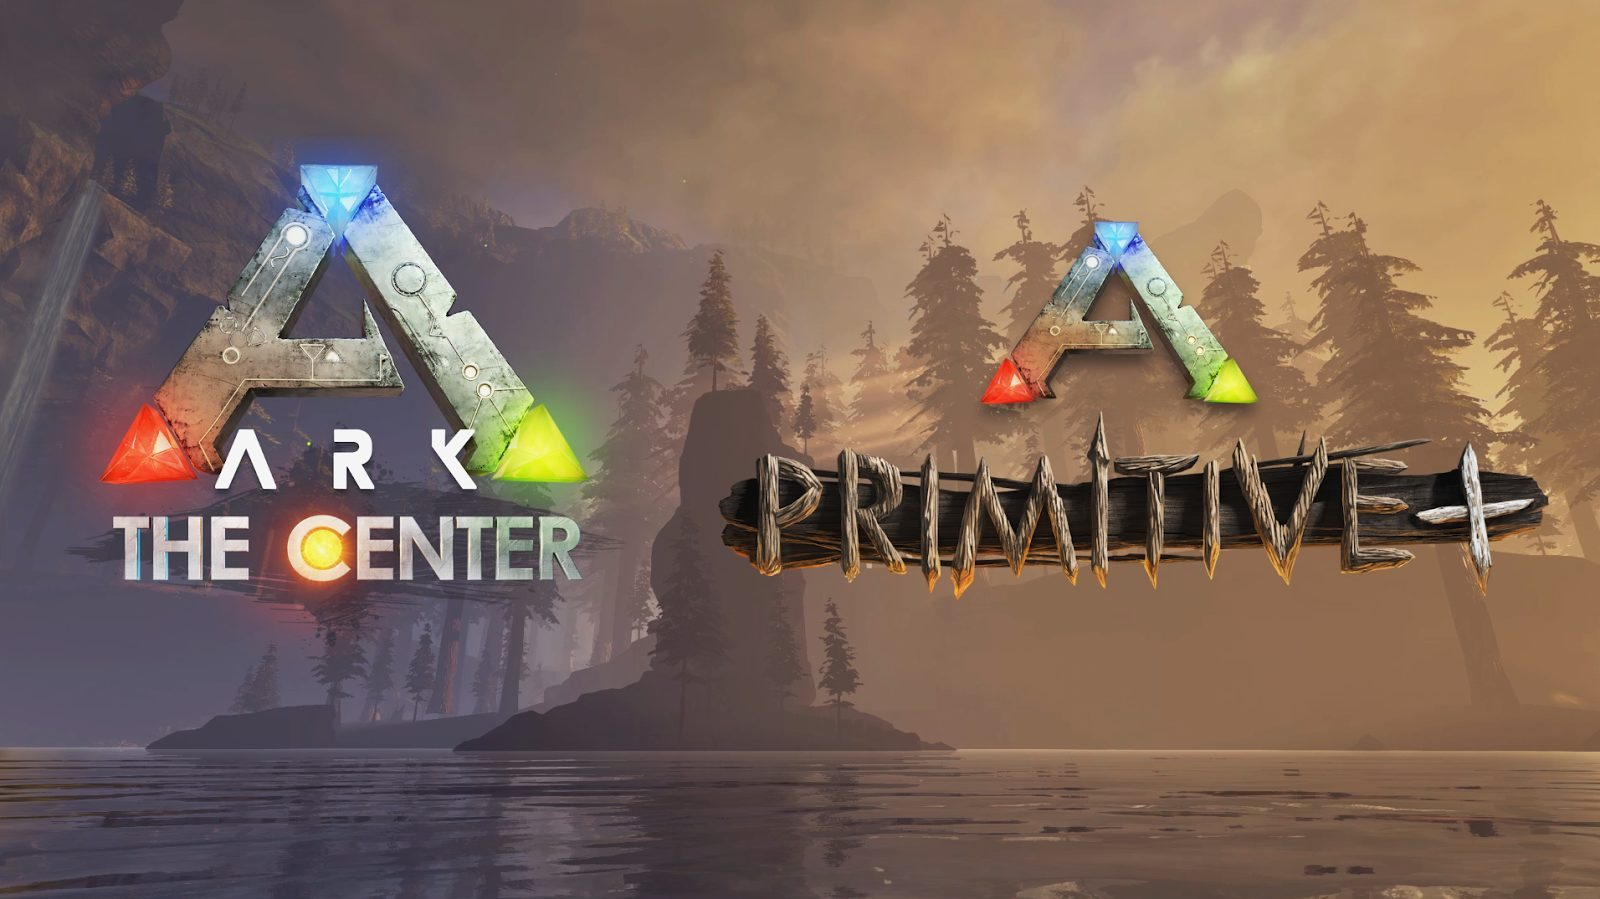 ARK: Survival Evolved Begins Free Steam Weekend, Huge Content Drop and 50% Sale - Gaming Cypher